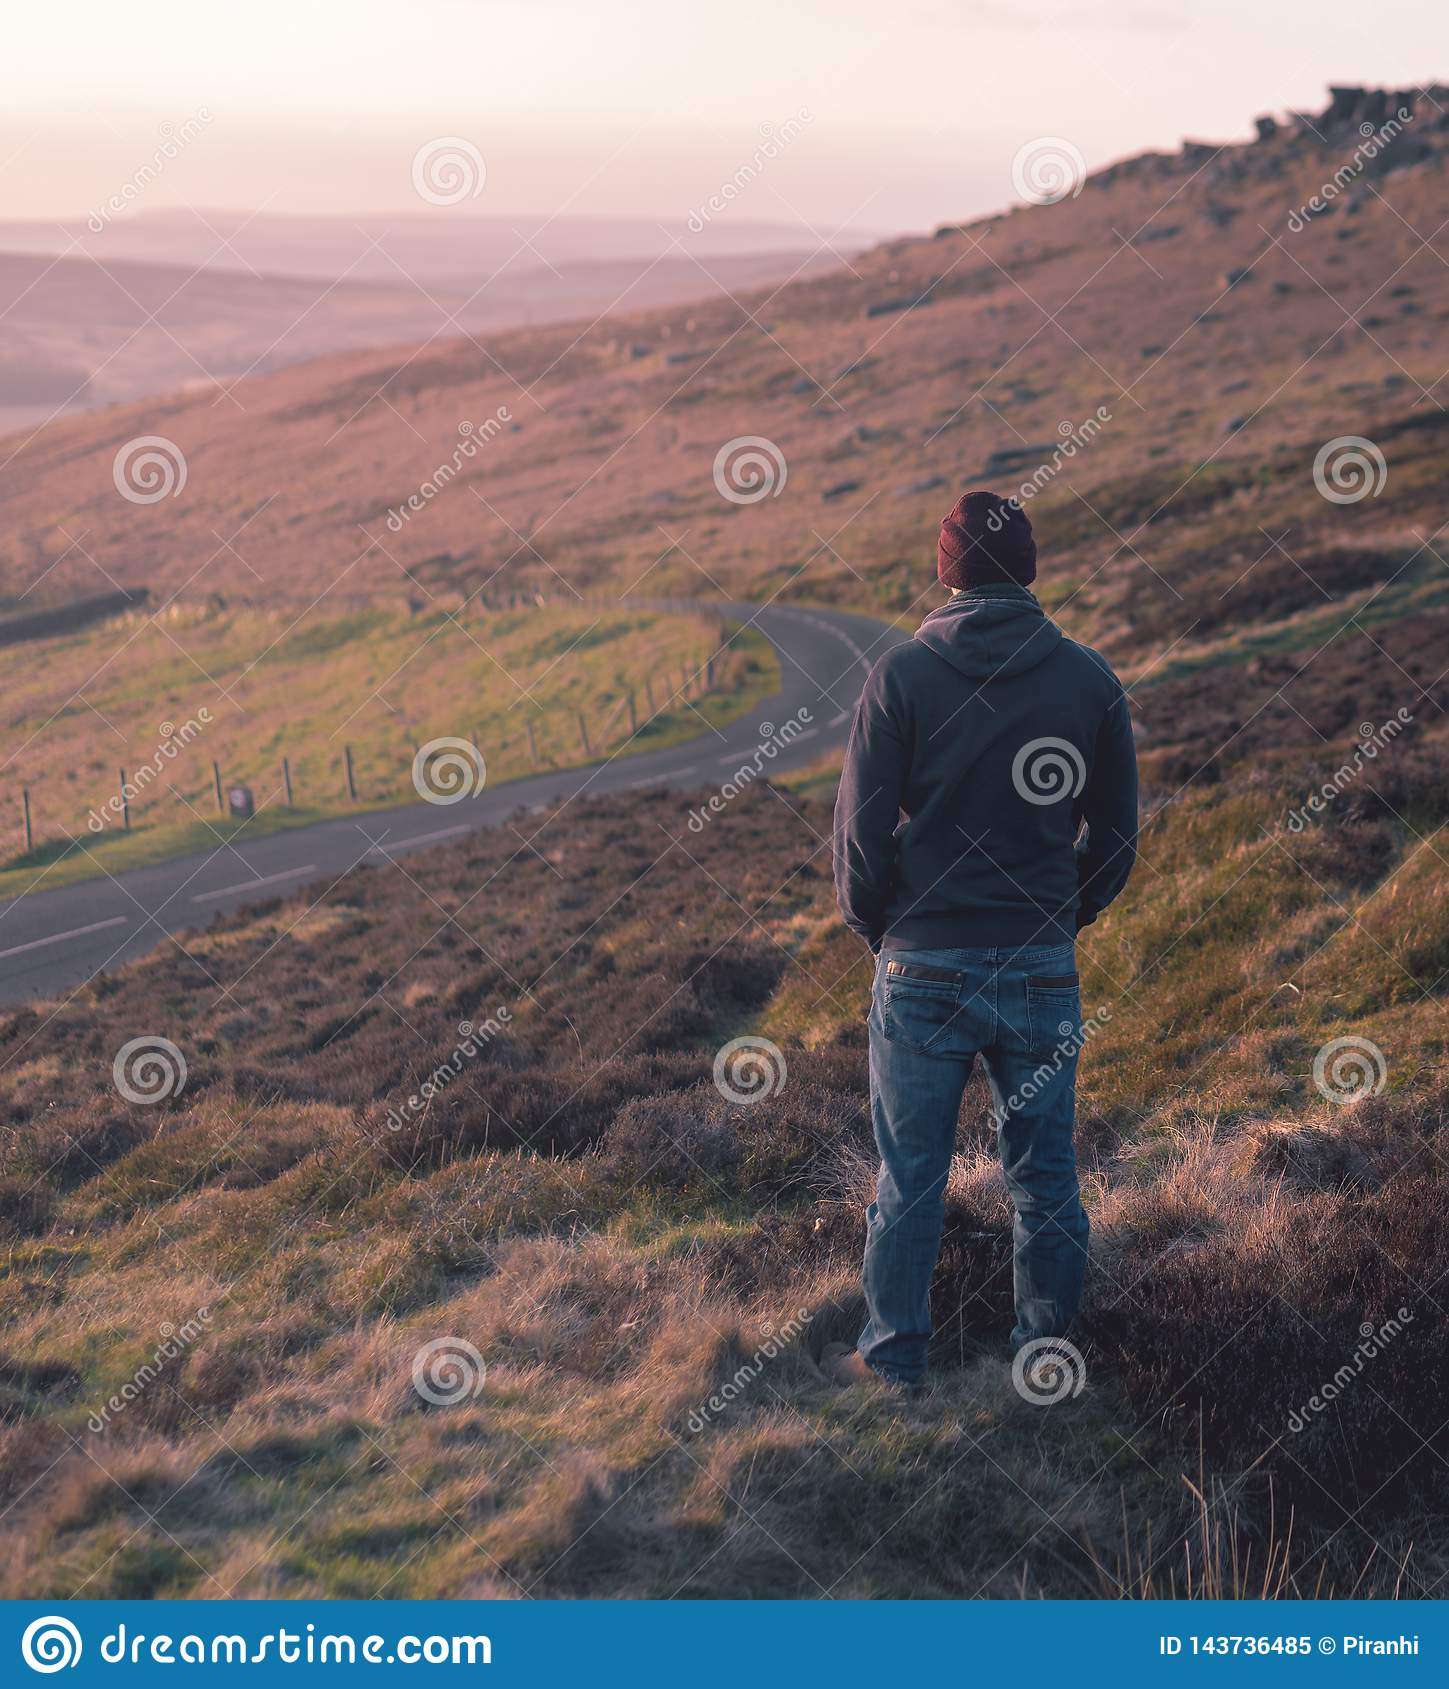 Lone man stares out over grassland during sunset